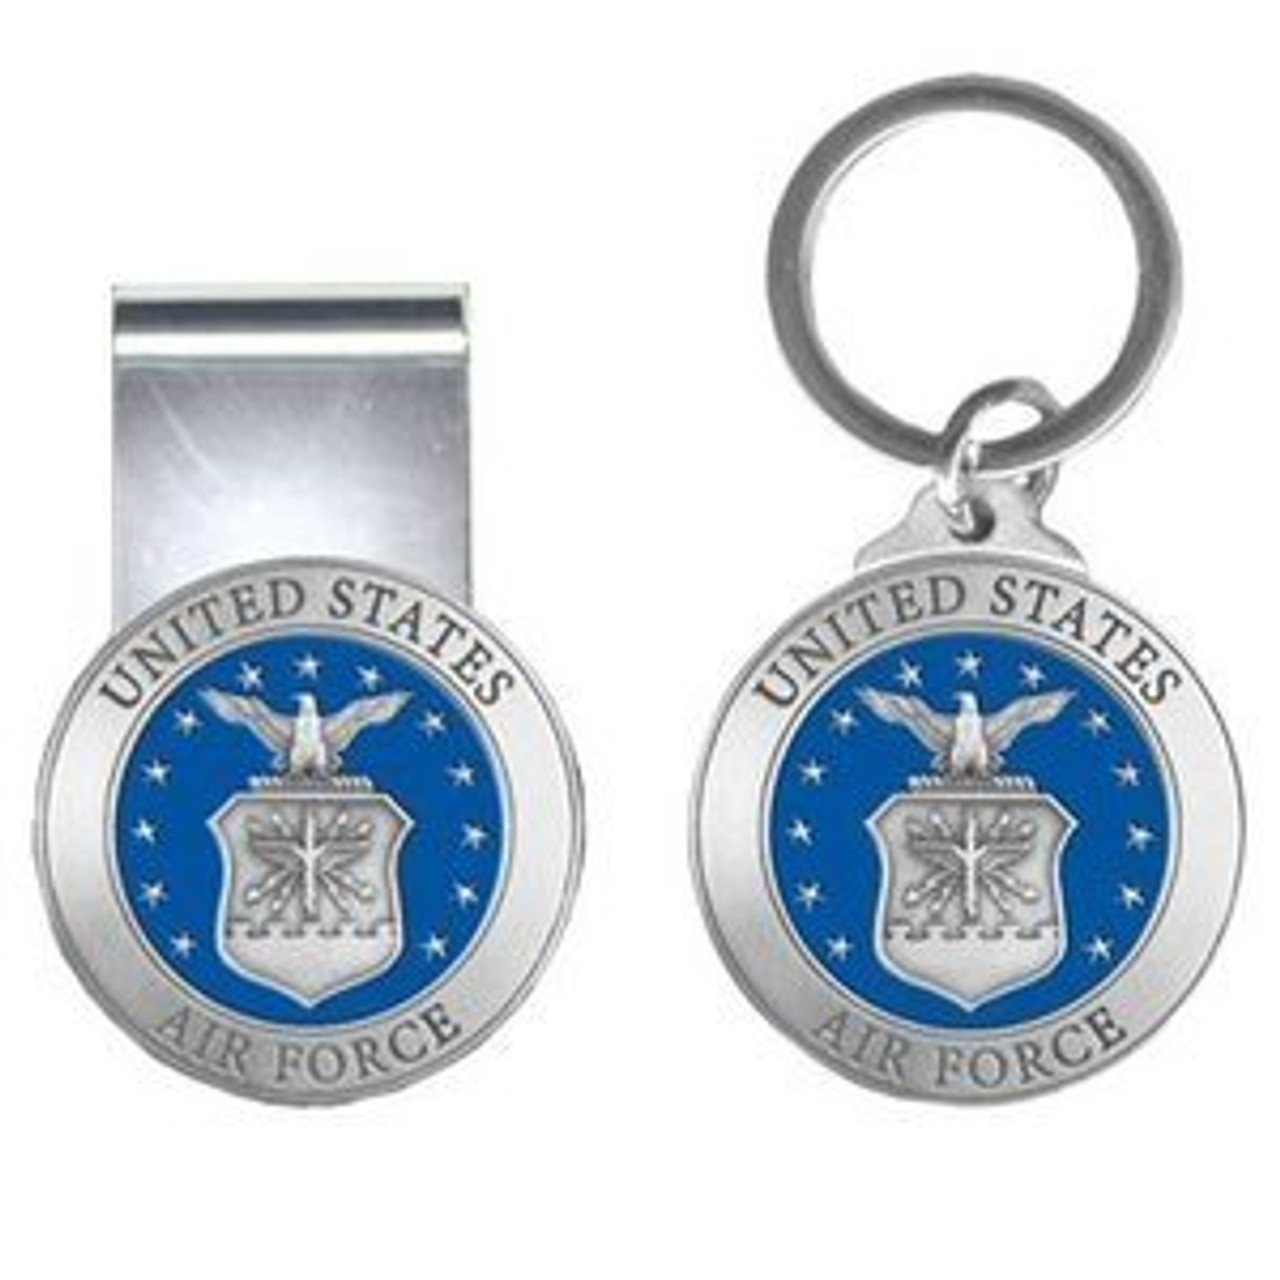 Money Clip & Key Chain Gift Sets